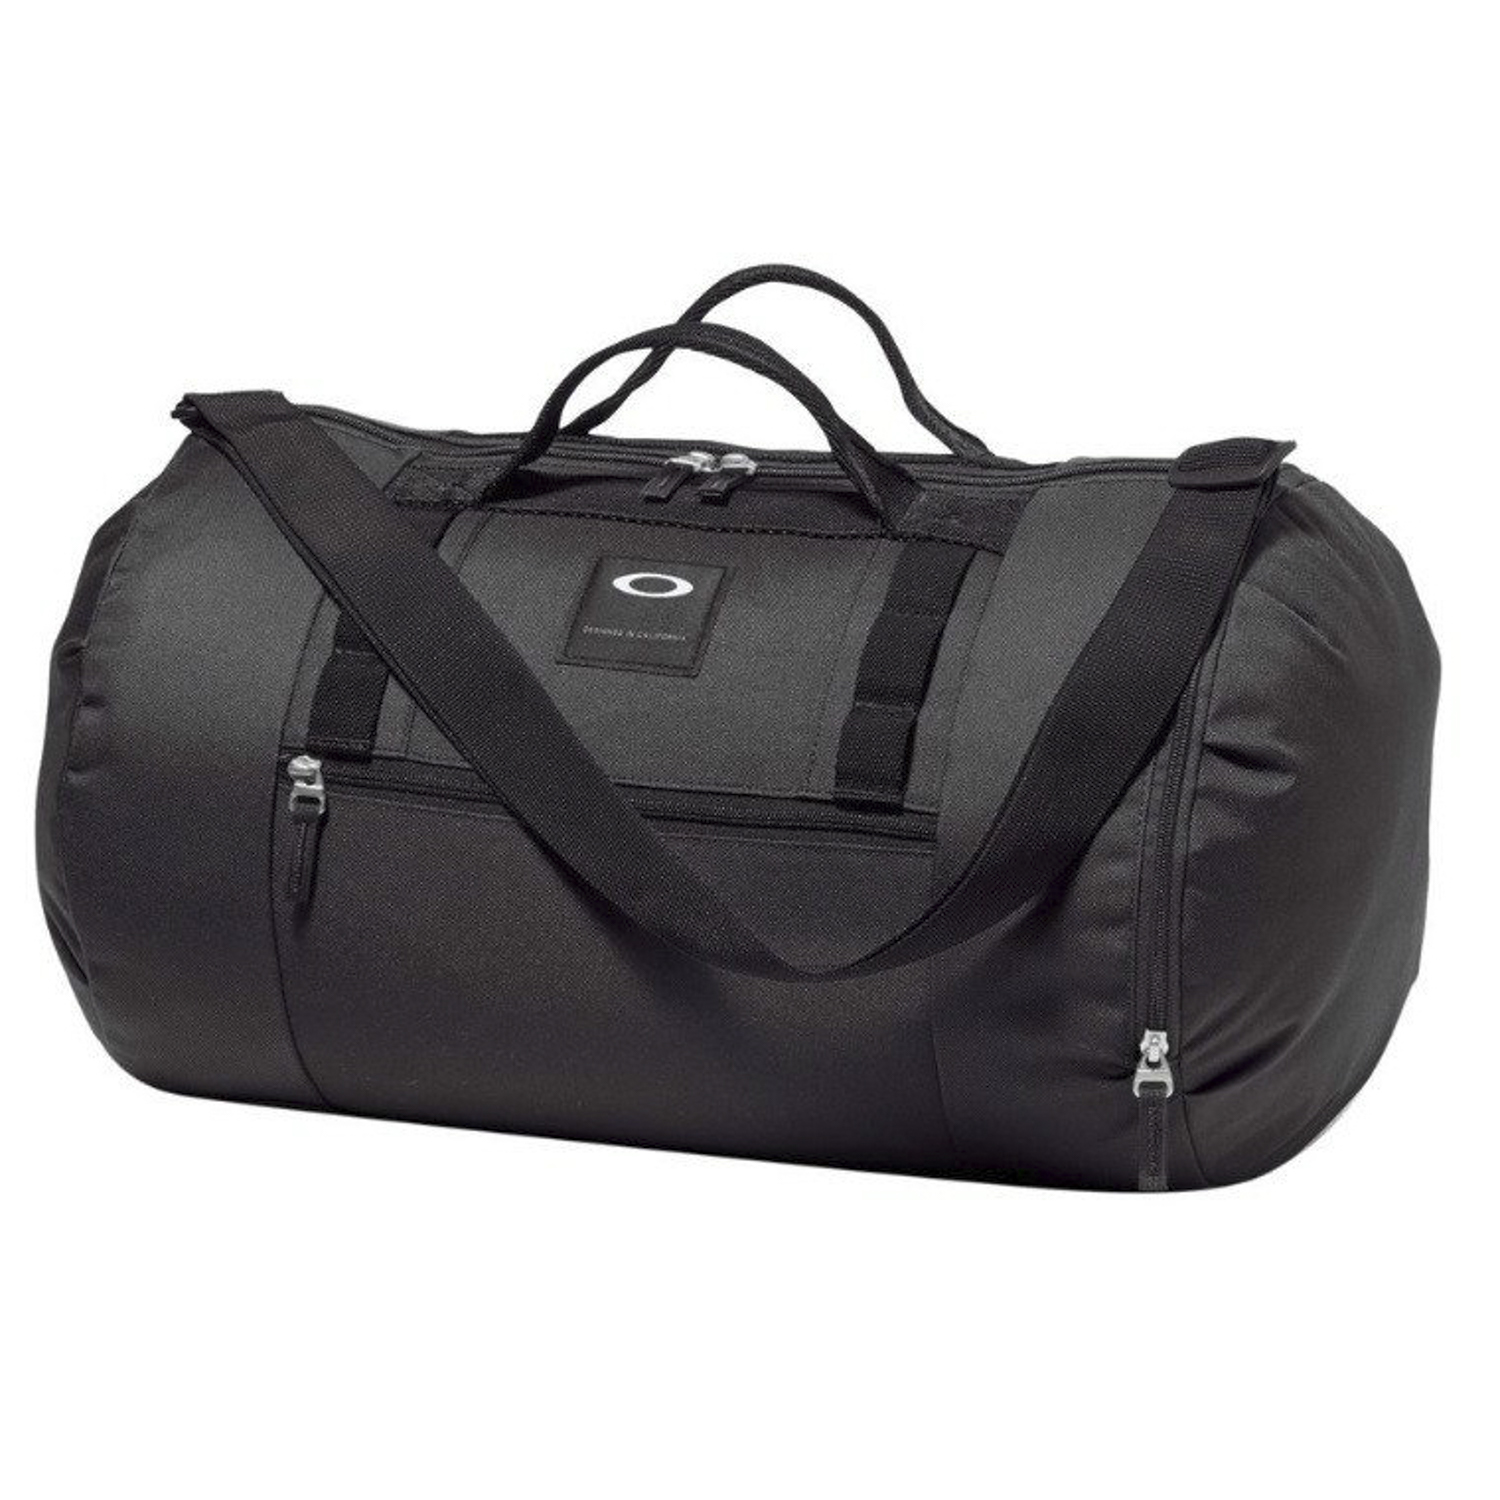 Under Armor Rolling Duffle Bag  f248202097de9